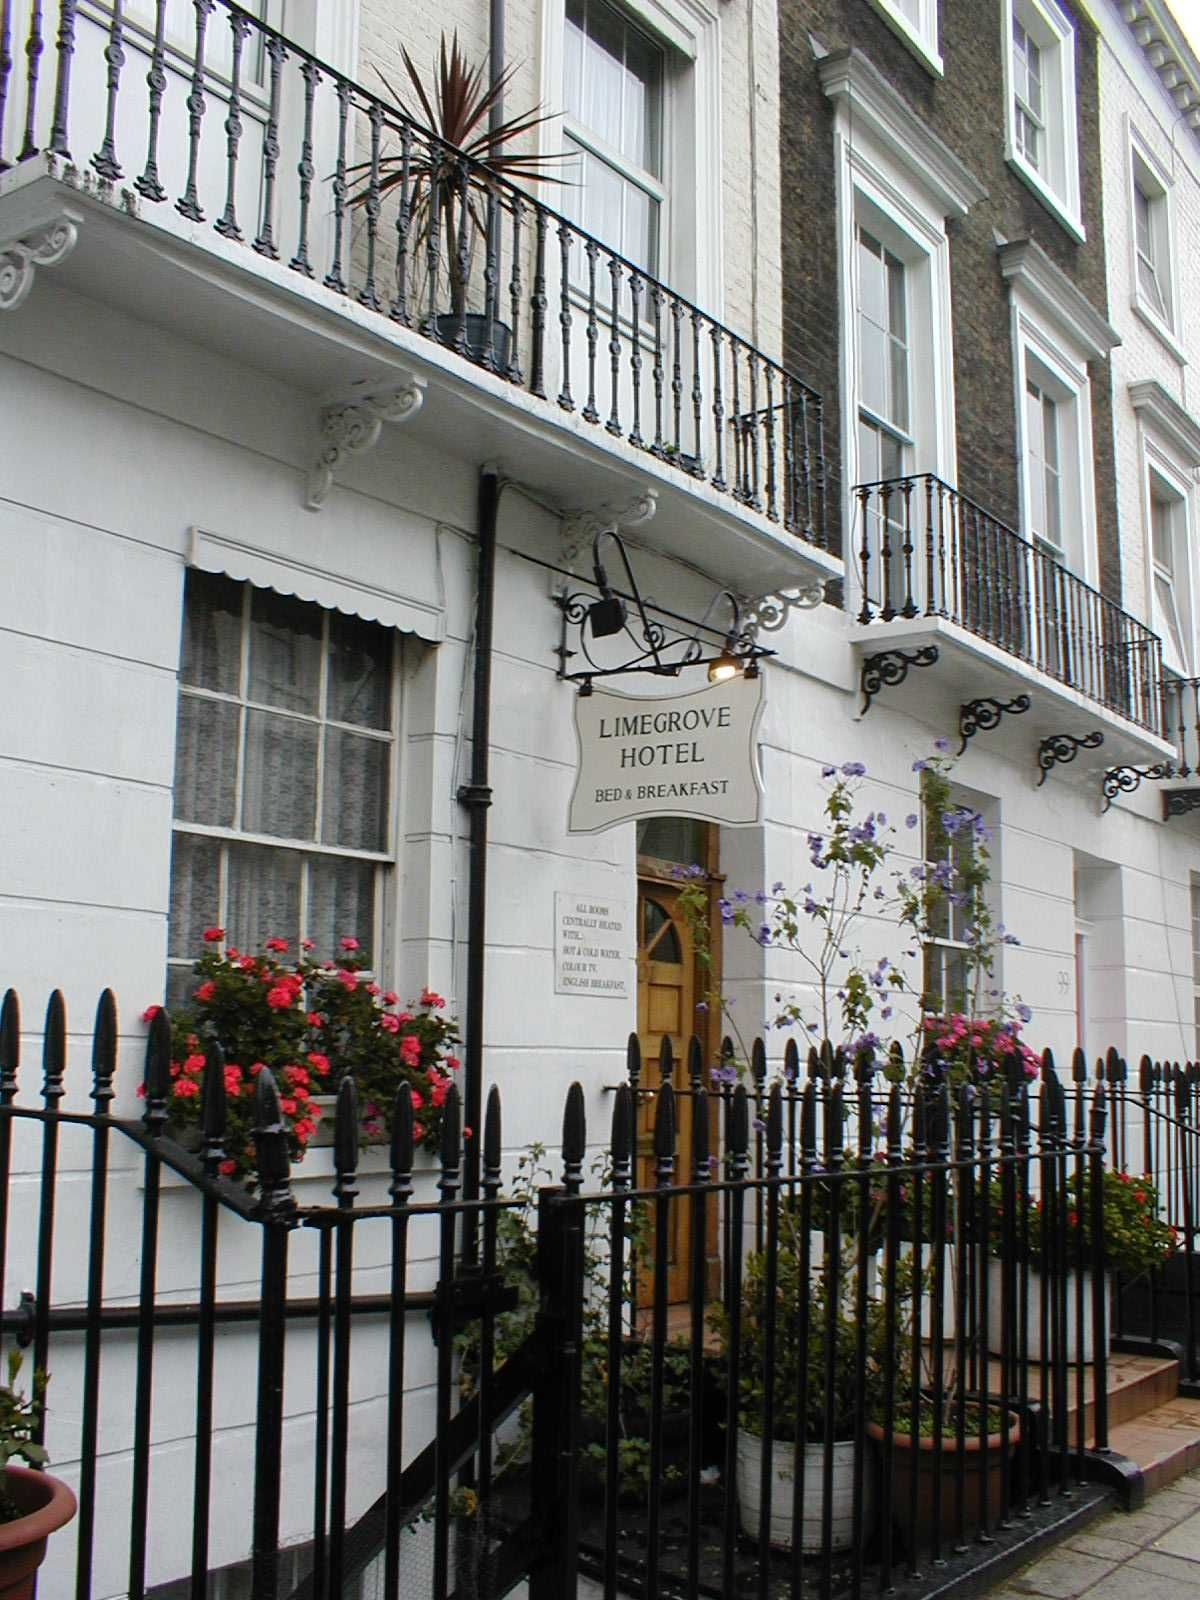 Bed & Breakfast, Victoria, Hotel Westminster Limegrove